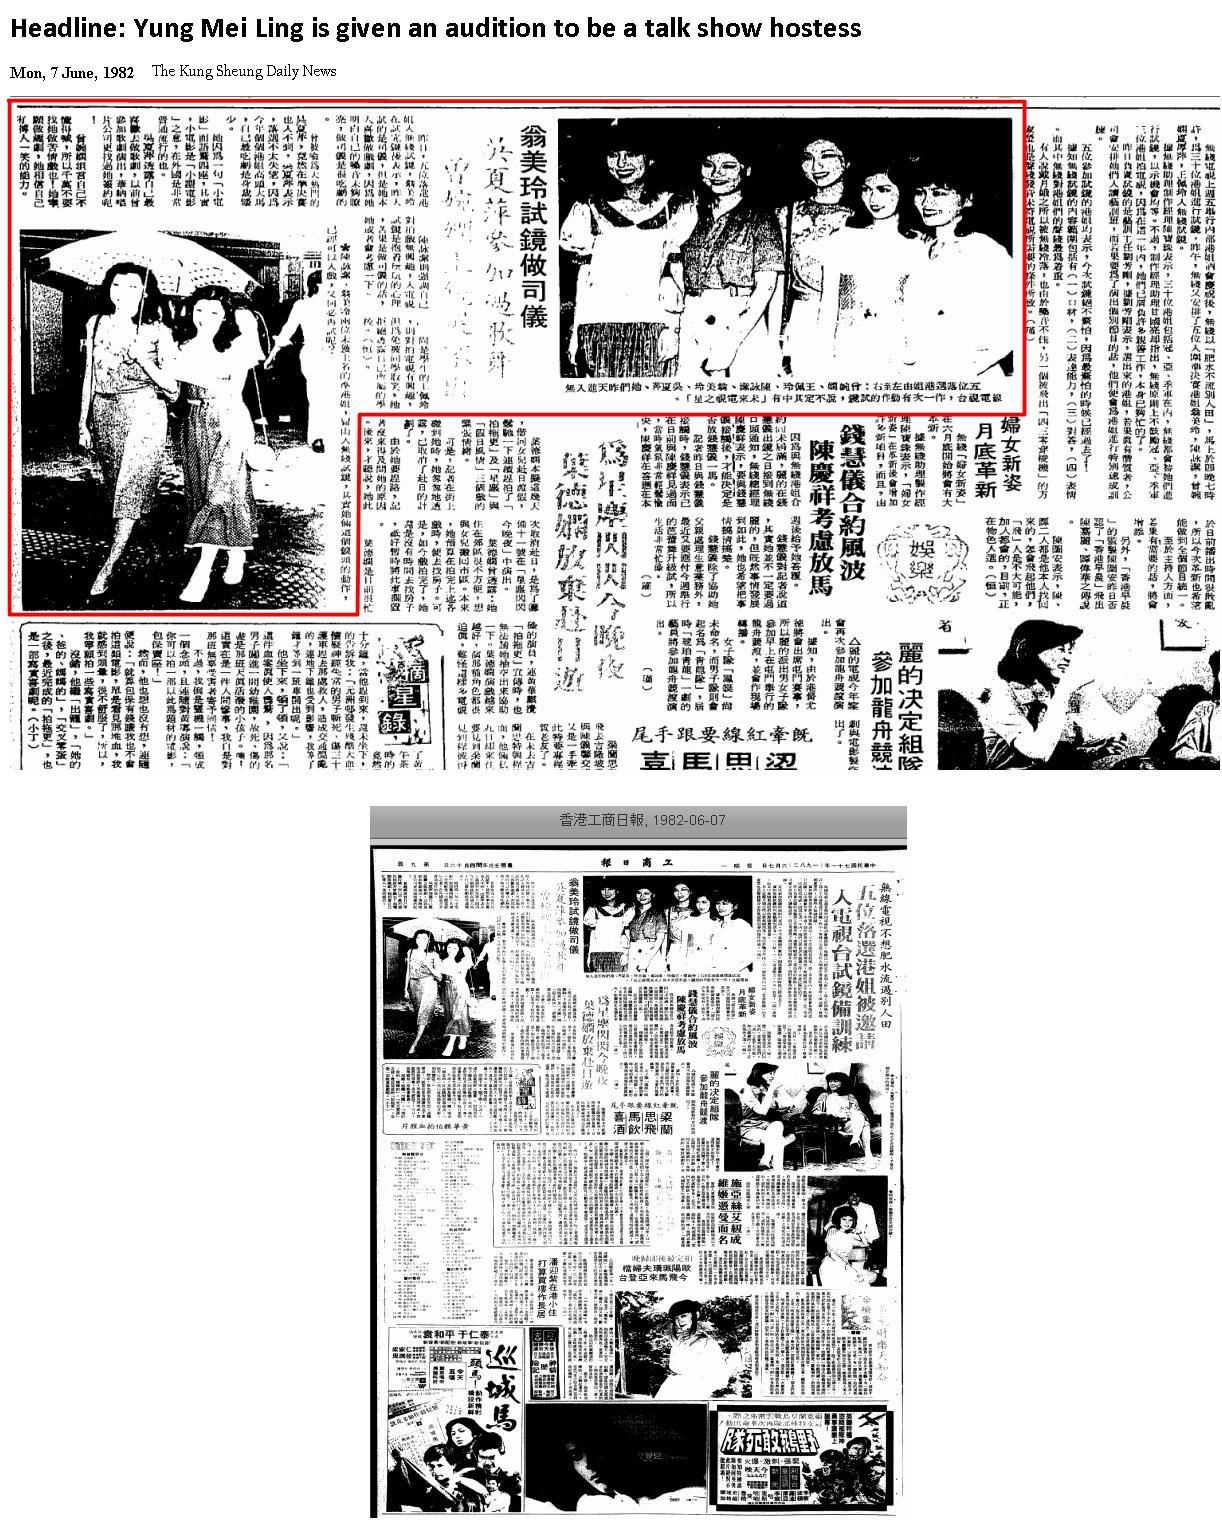 1982-06-07 The Kung Sheung Daily News